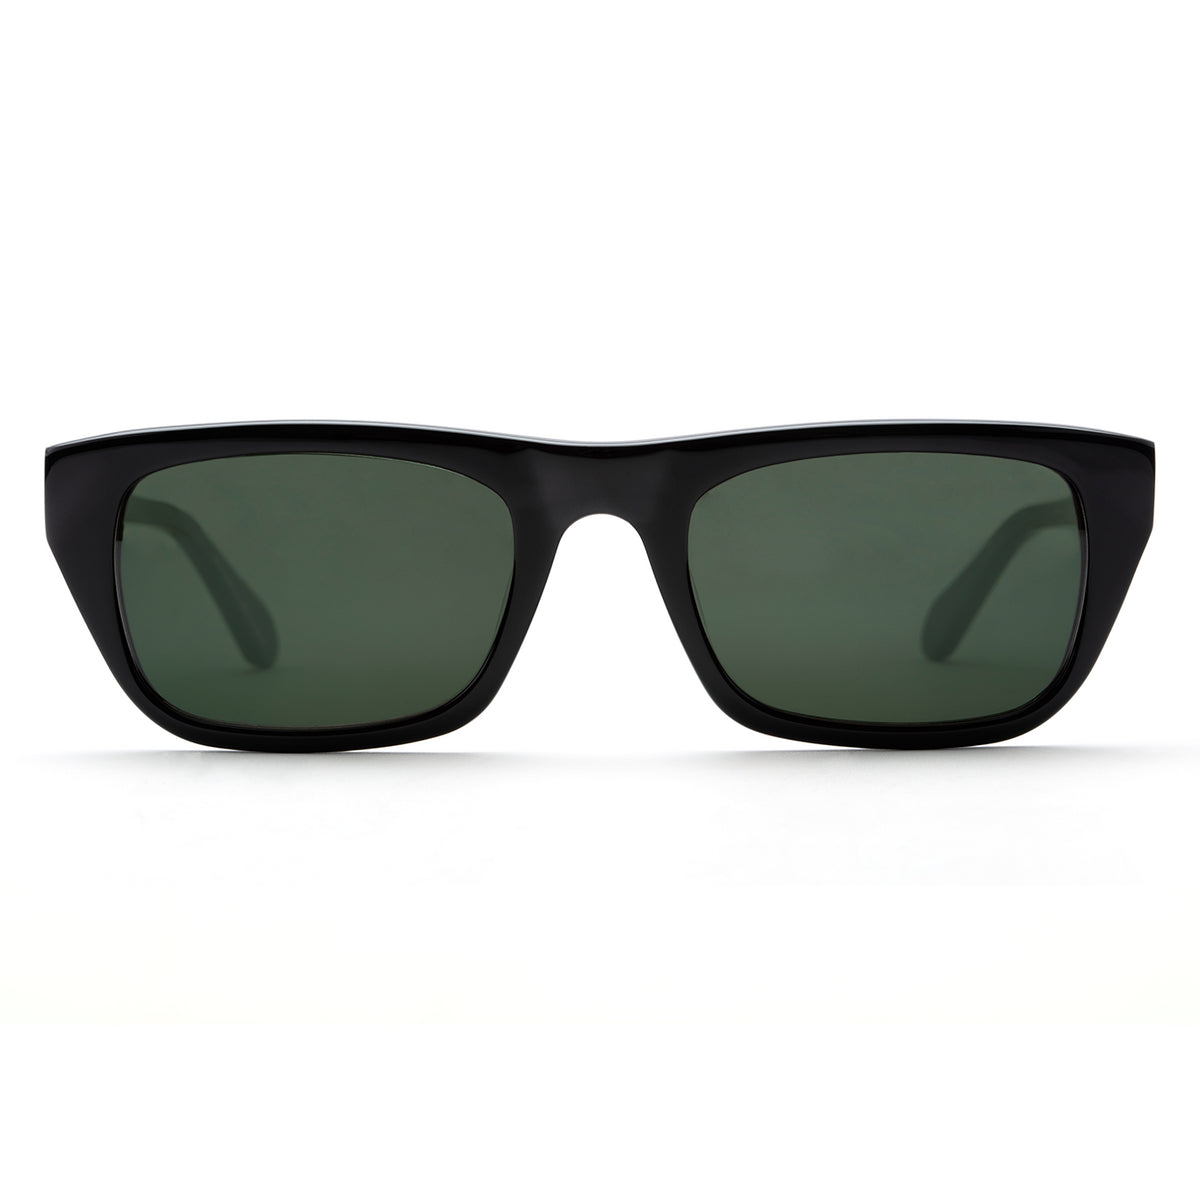 TULSA | Black handcrafted acetate sunglasses